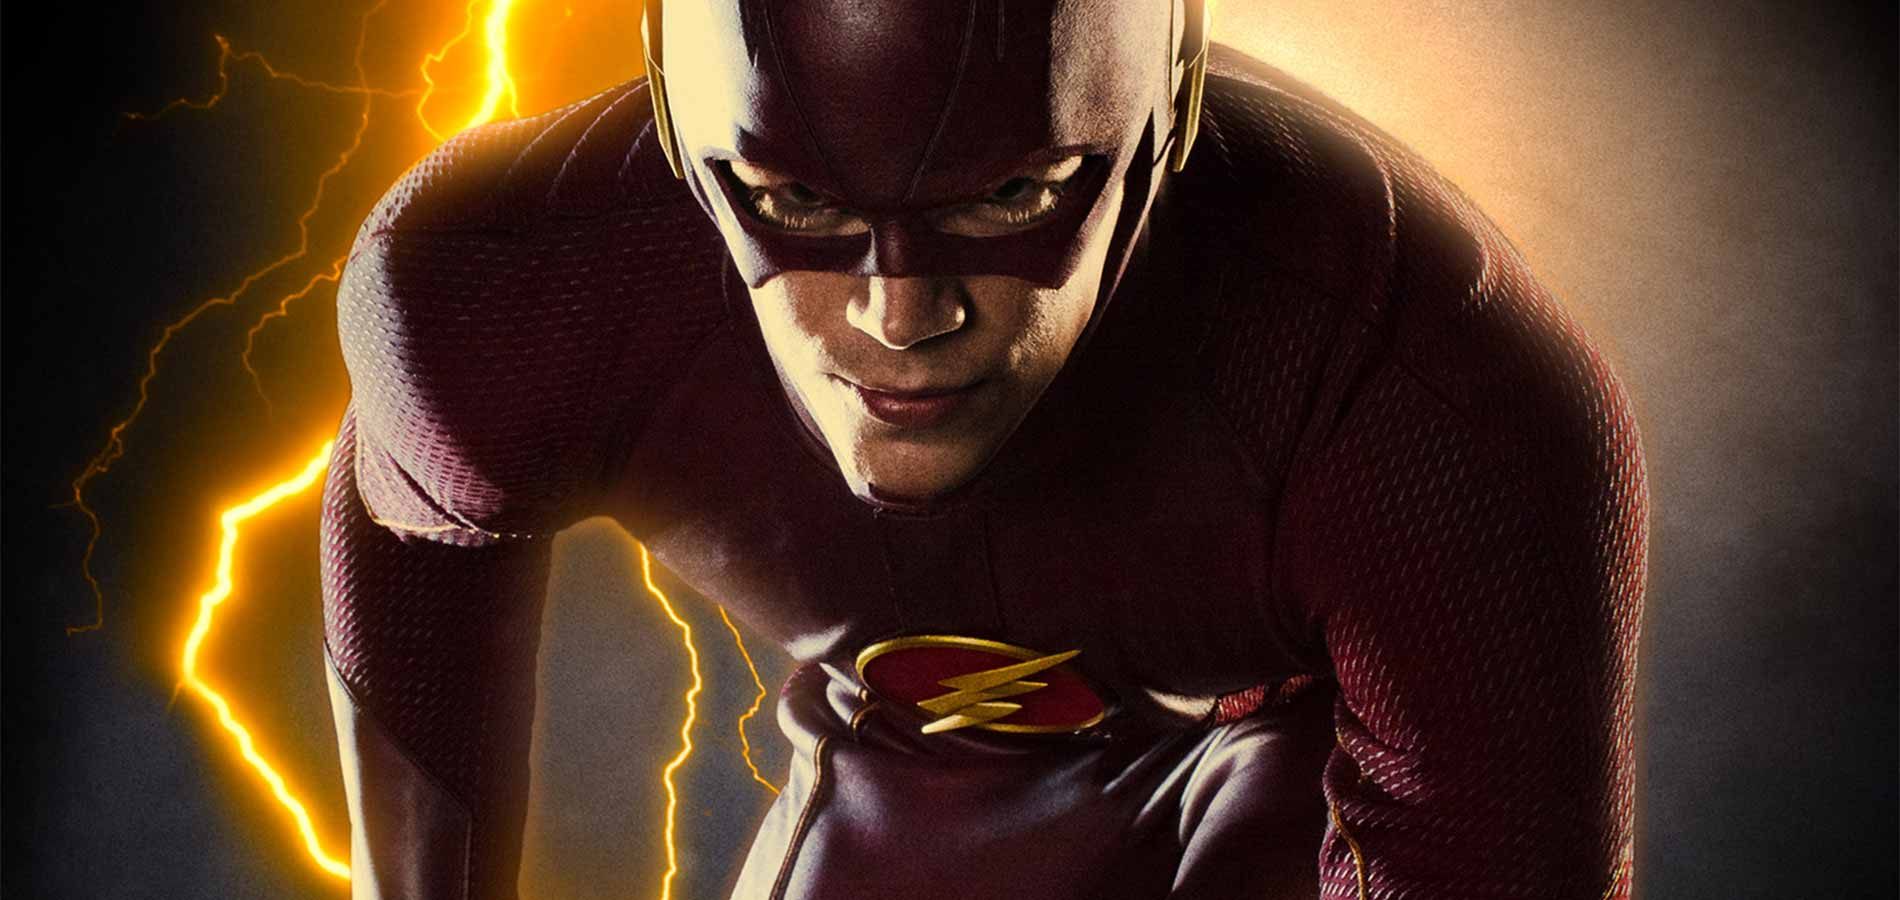 What is a flash